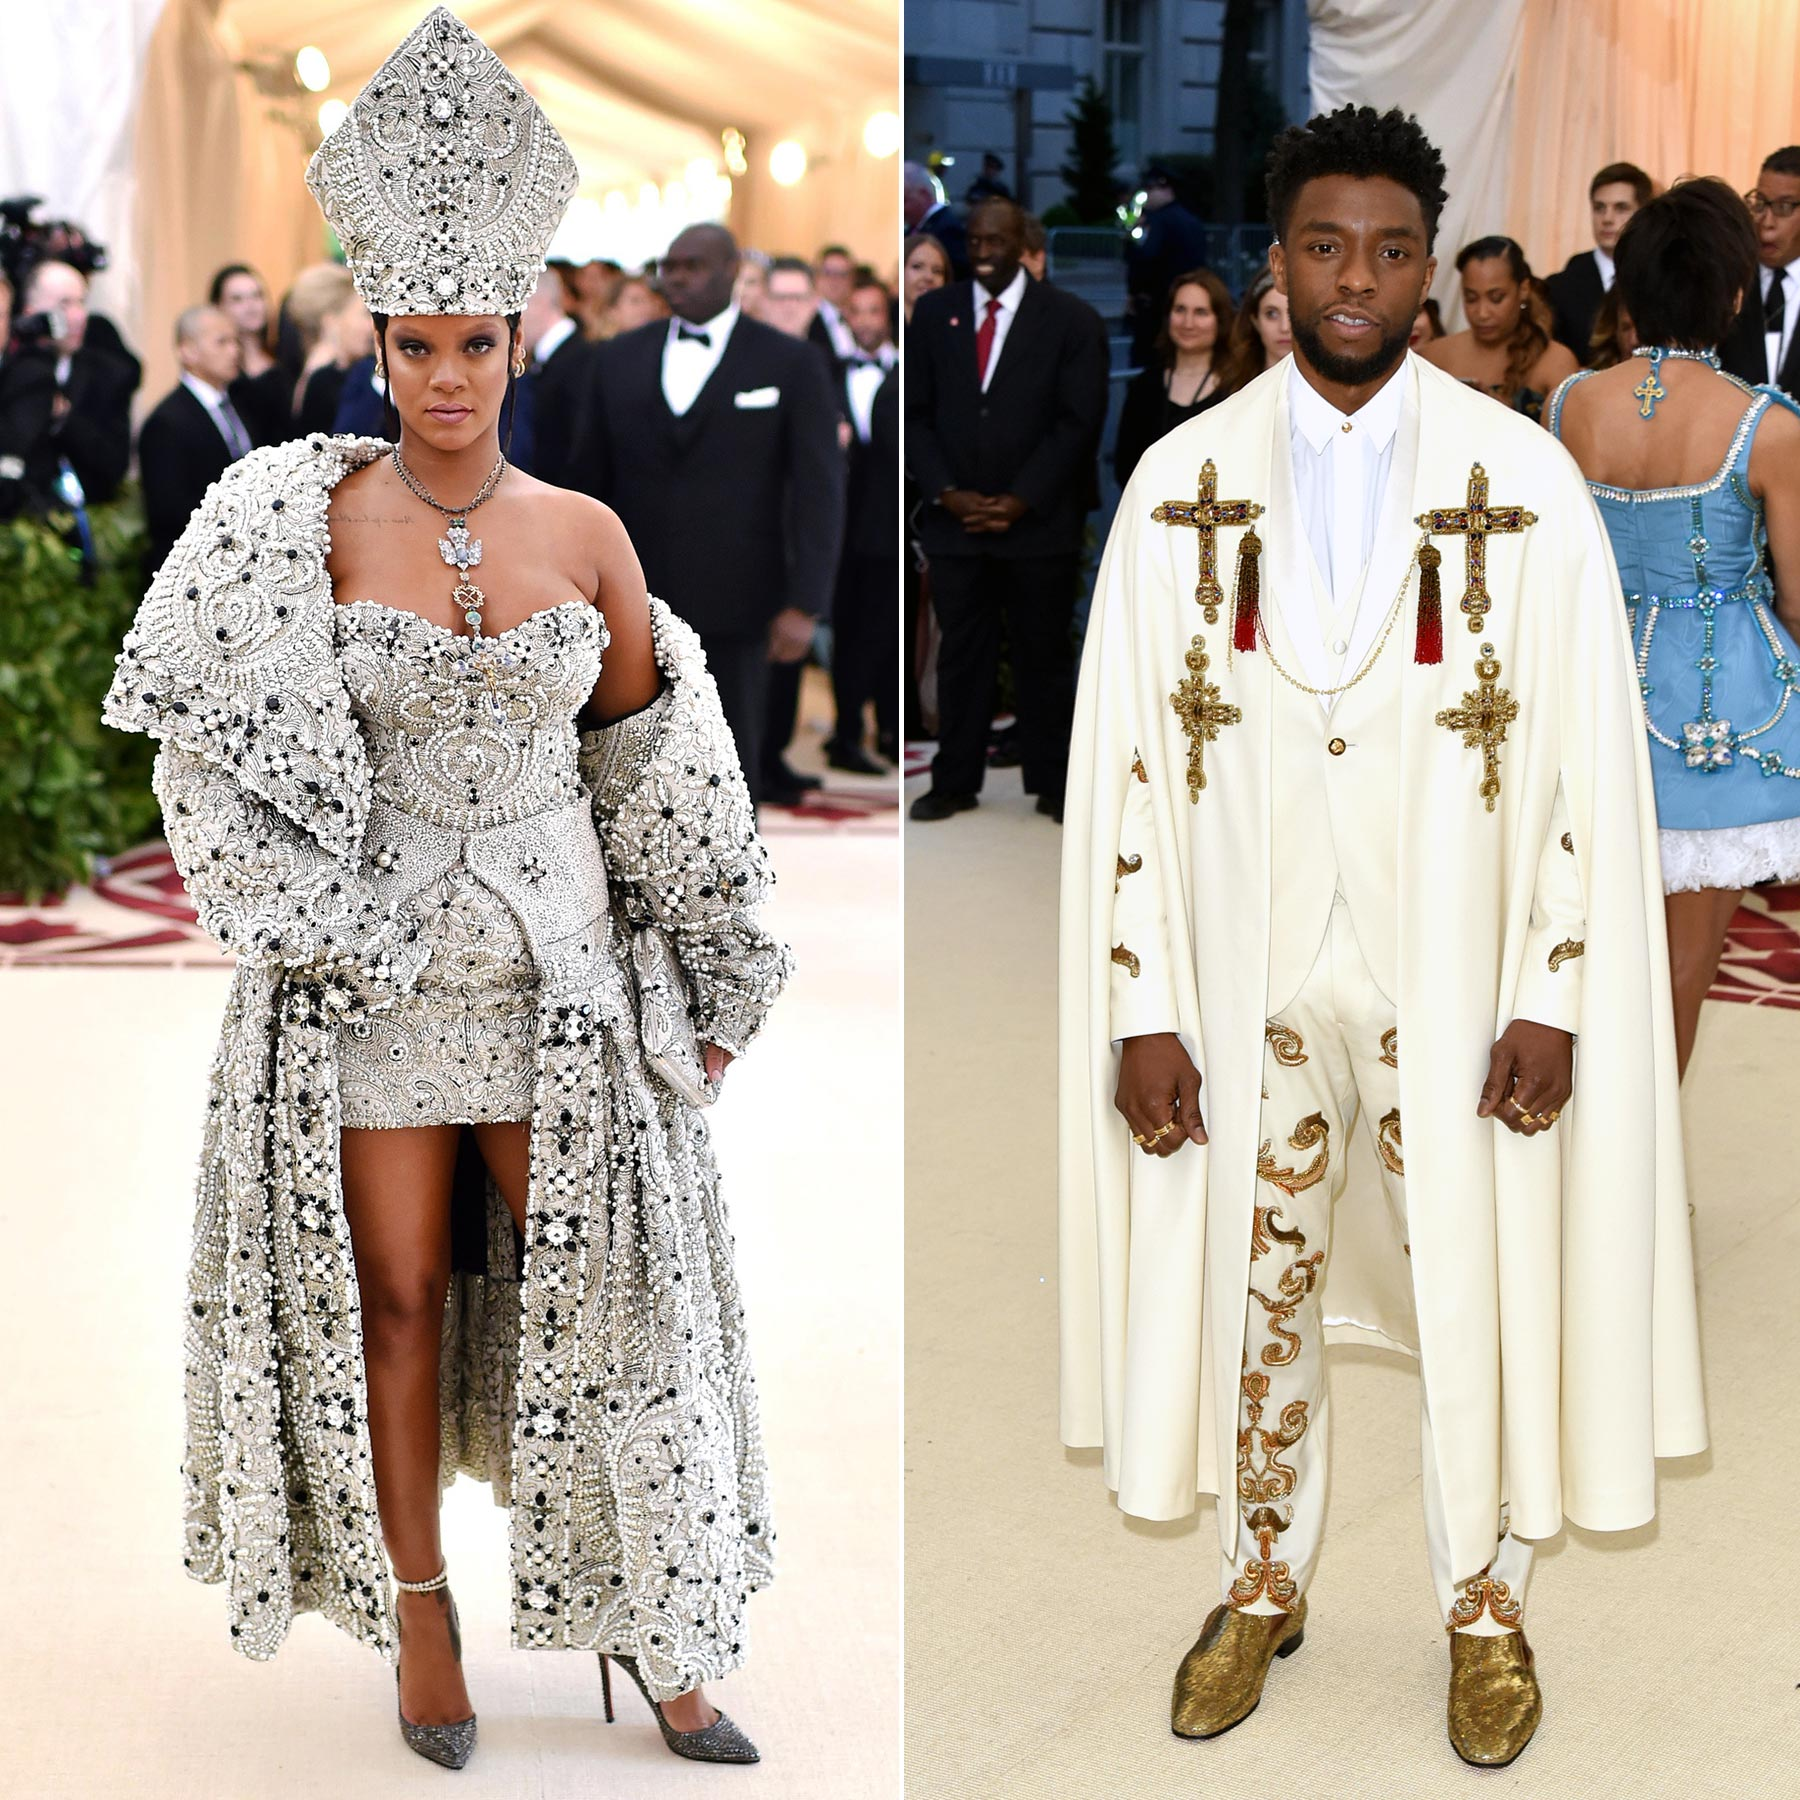 2018 — Heavenly Bodies: Fashion and the Catholic Imagination